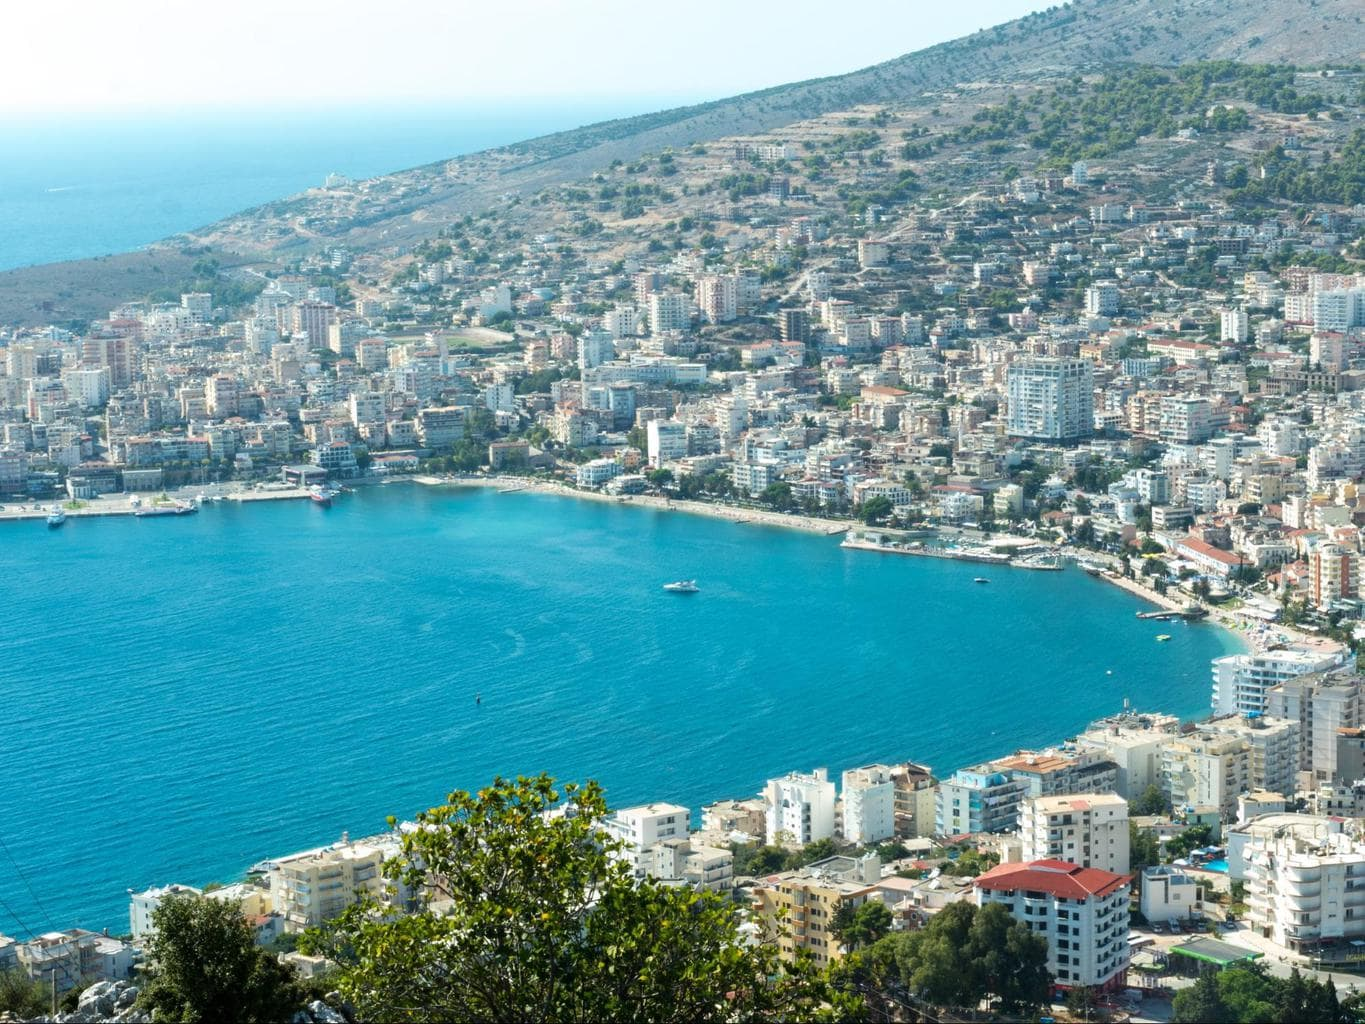 Aerial view of Saranda from the Castle on top of the hill